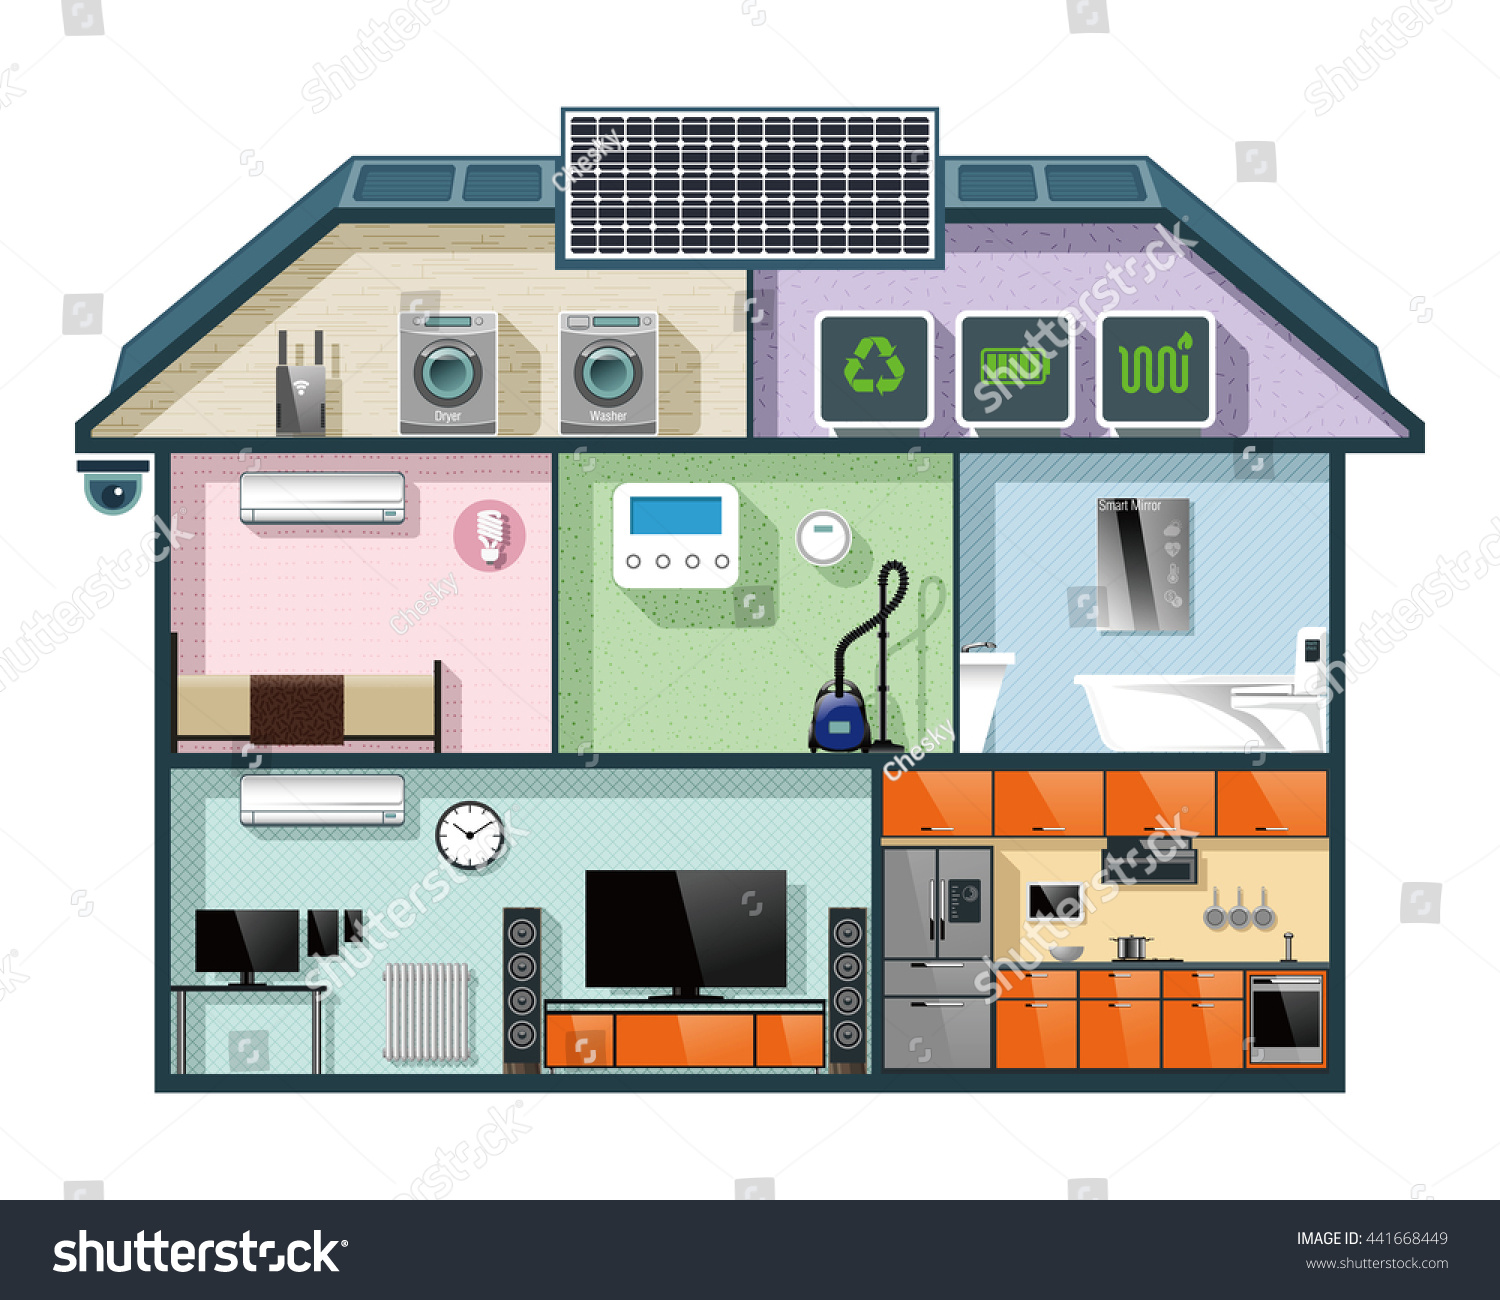 Energy efficient house cutaway image smart stock vector 441668449 shutterstock - Home automation energy saving ...